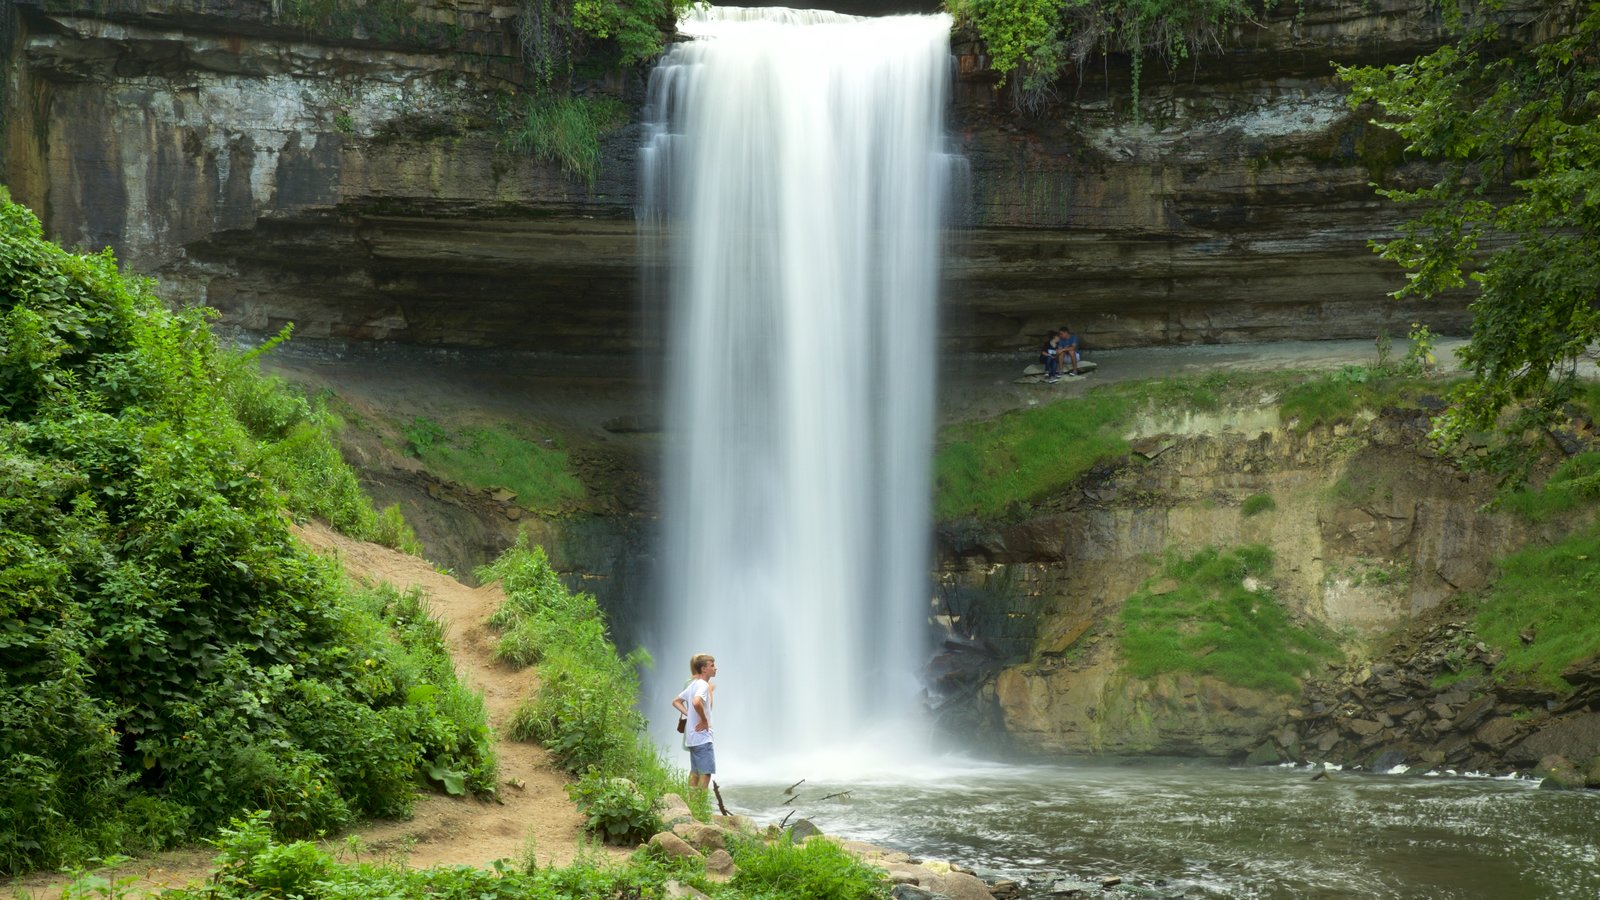 Minnehaha Park waterfall pictures: view images of minnehaha park